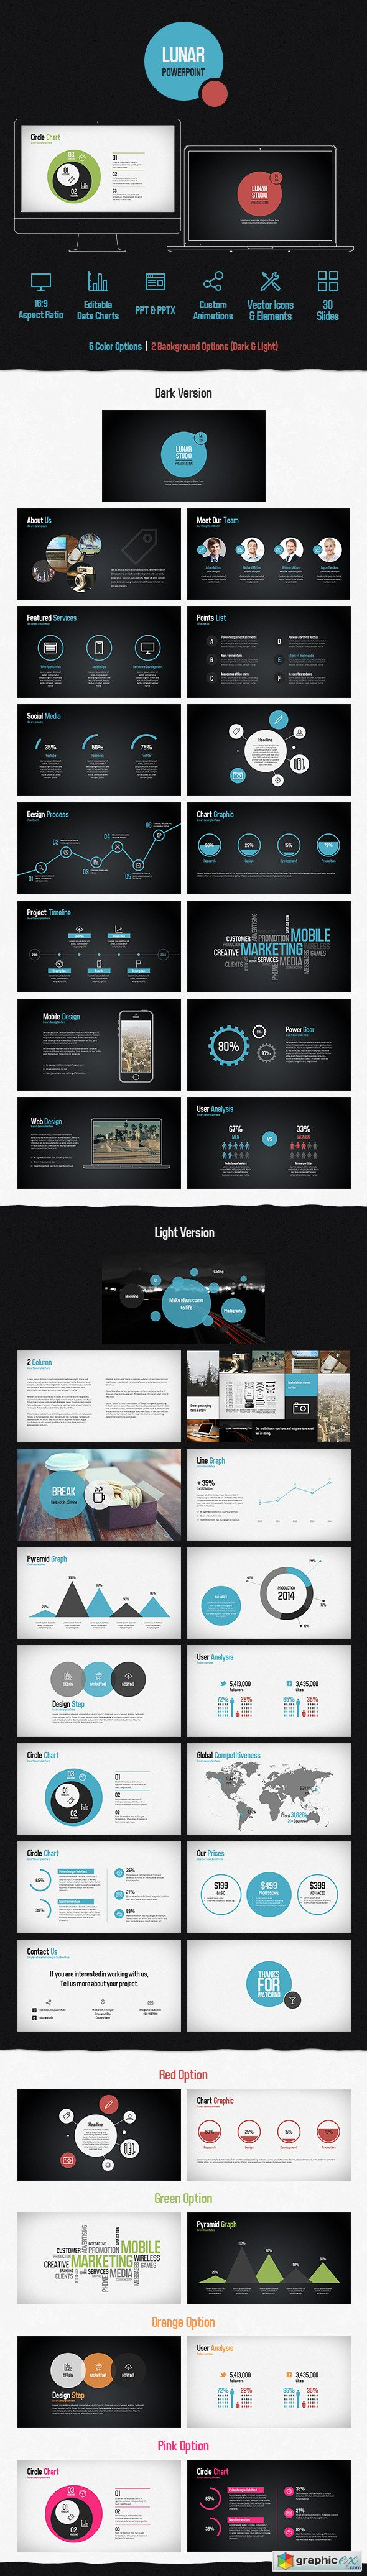 Lunar Powerpoint Presentation Template